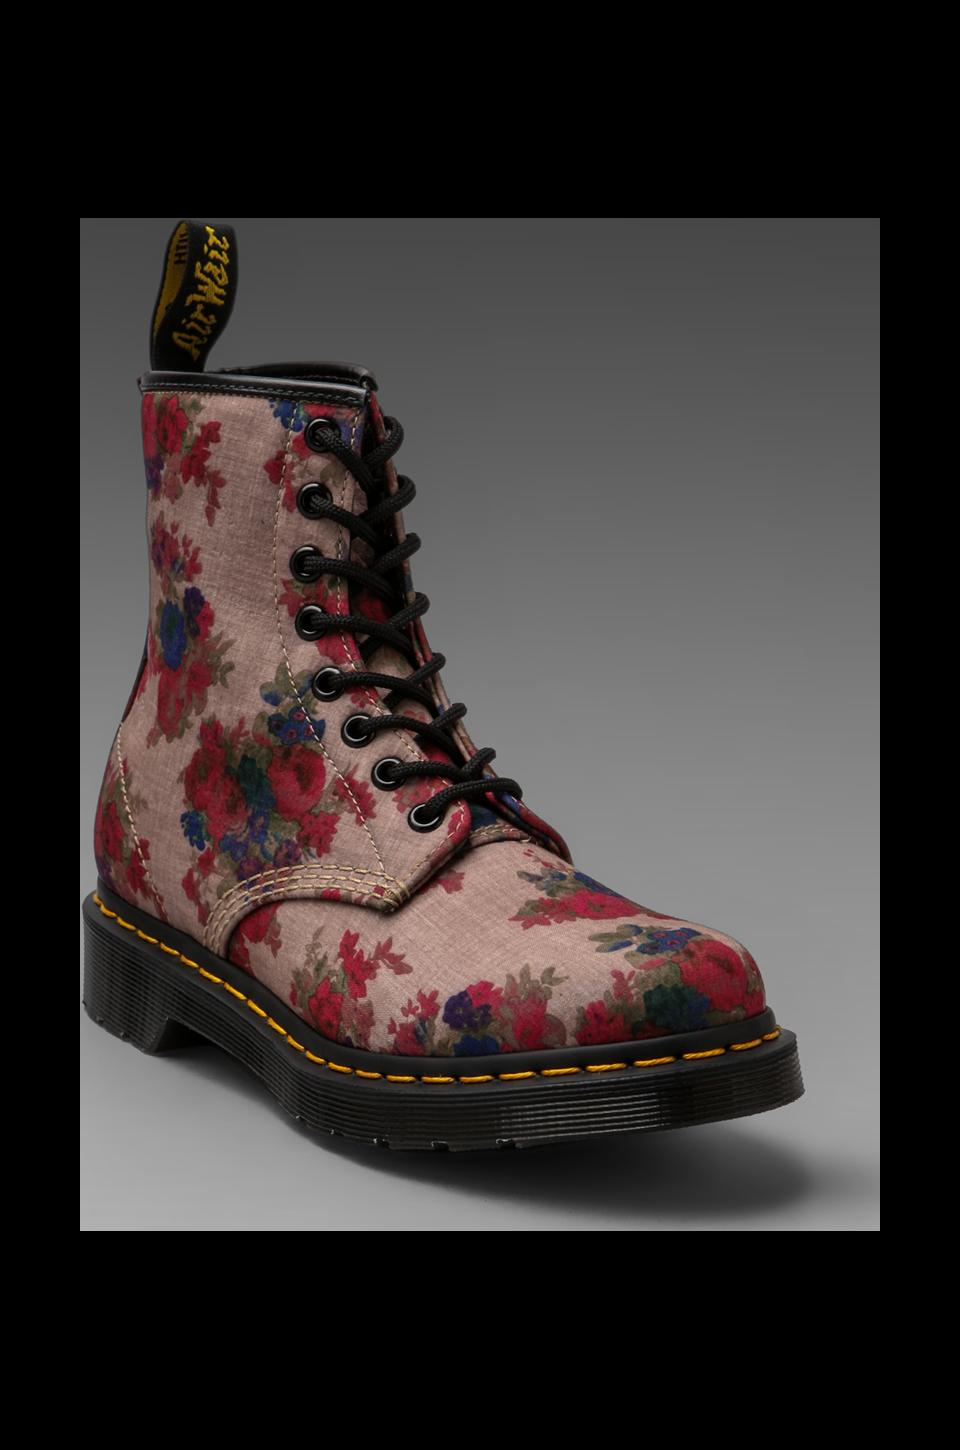 Dr. Martens 8-Eye Boot in Floral Taupe